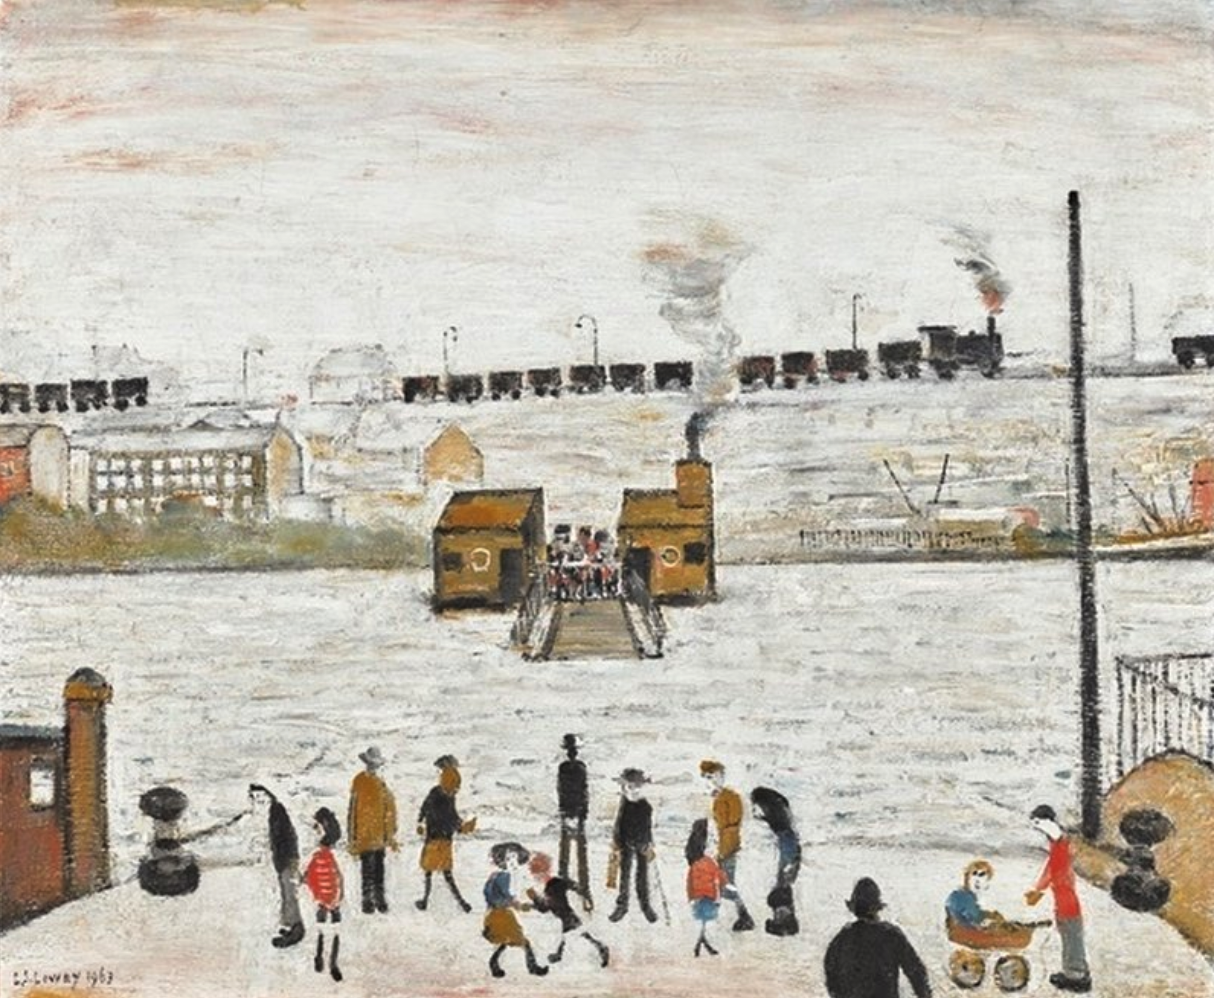 The Ferry at Blyth (1963) by Laurence Stephen Lowry (1887 - 1976), English artist.